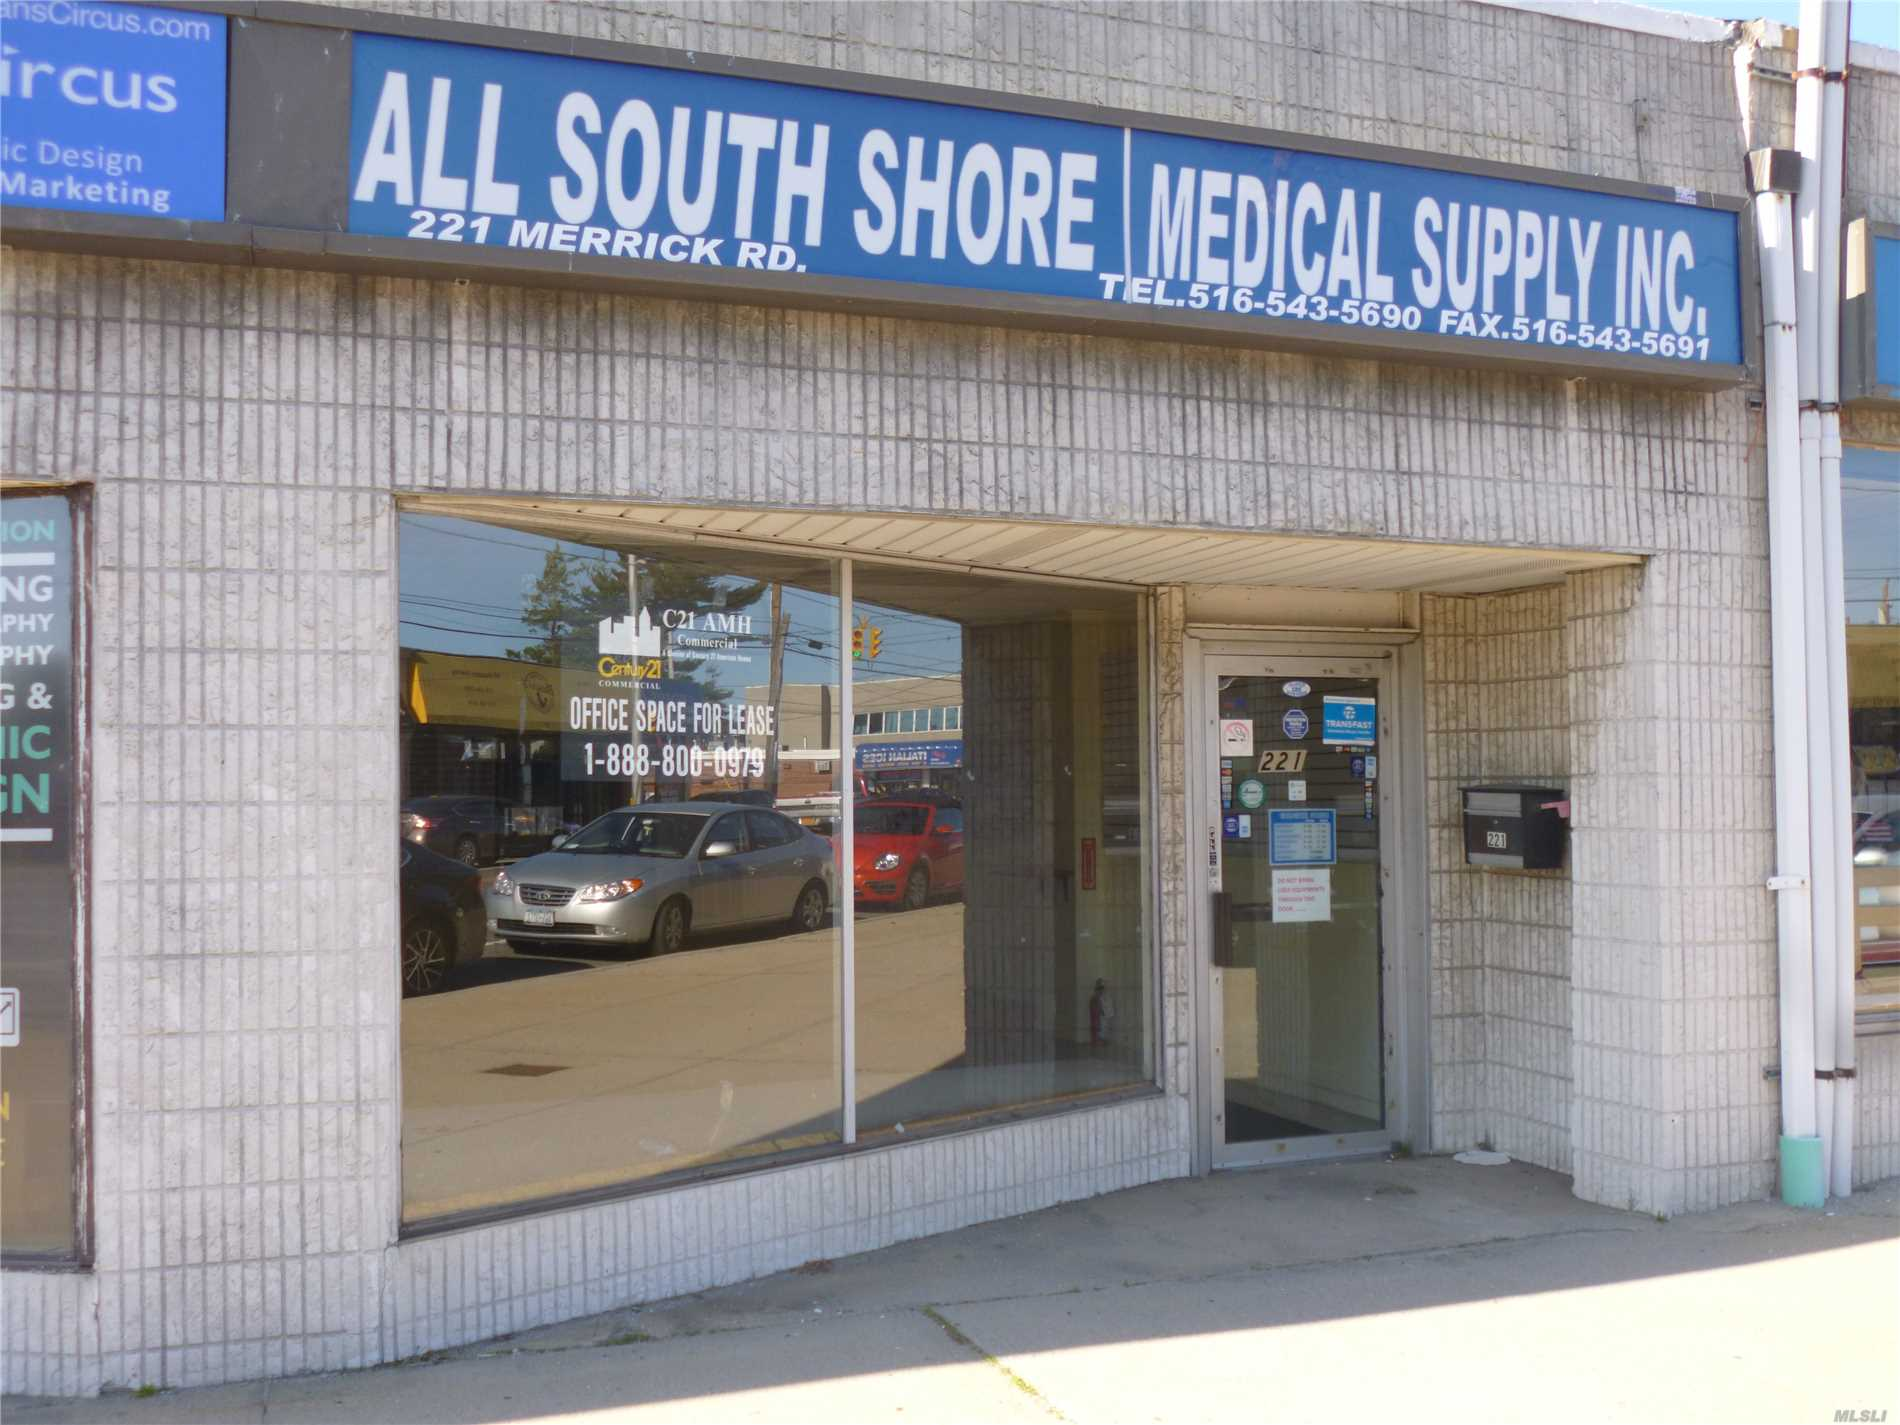 Excellent Retail/Office Space In A Strip Of Small Stores.The Store Is Perfect For An Office/Medical Office & Is In The Immediate Vicinity Of South Nassau Hospital. The Rear Door Leads To The Parking Lot Which Has 10 Car Shared Parking. There Is Also Plenty Of Street Parking. There Is Separate Exterior Entrance To A Private Basement For Storage. The Store Has Approx. 832 Sq/Ft & The Basement Has Approx. 512 Sq/Ft.